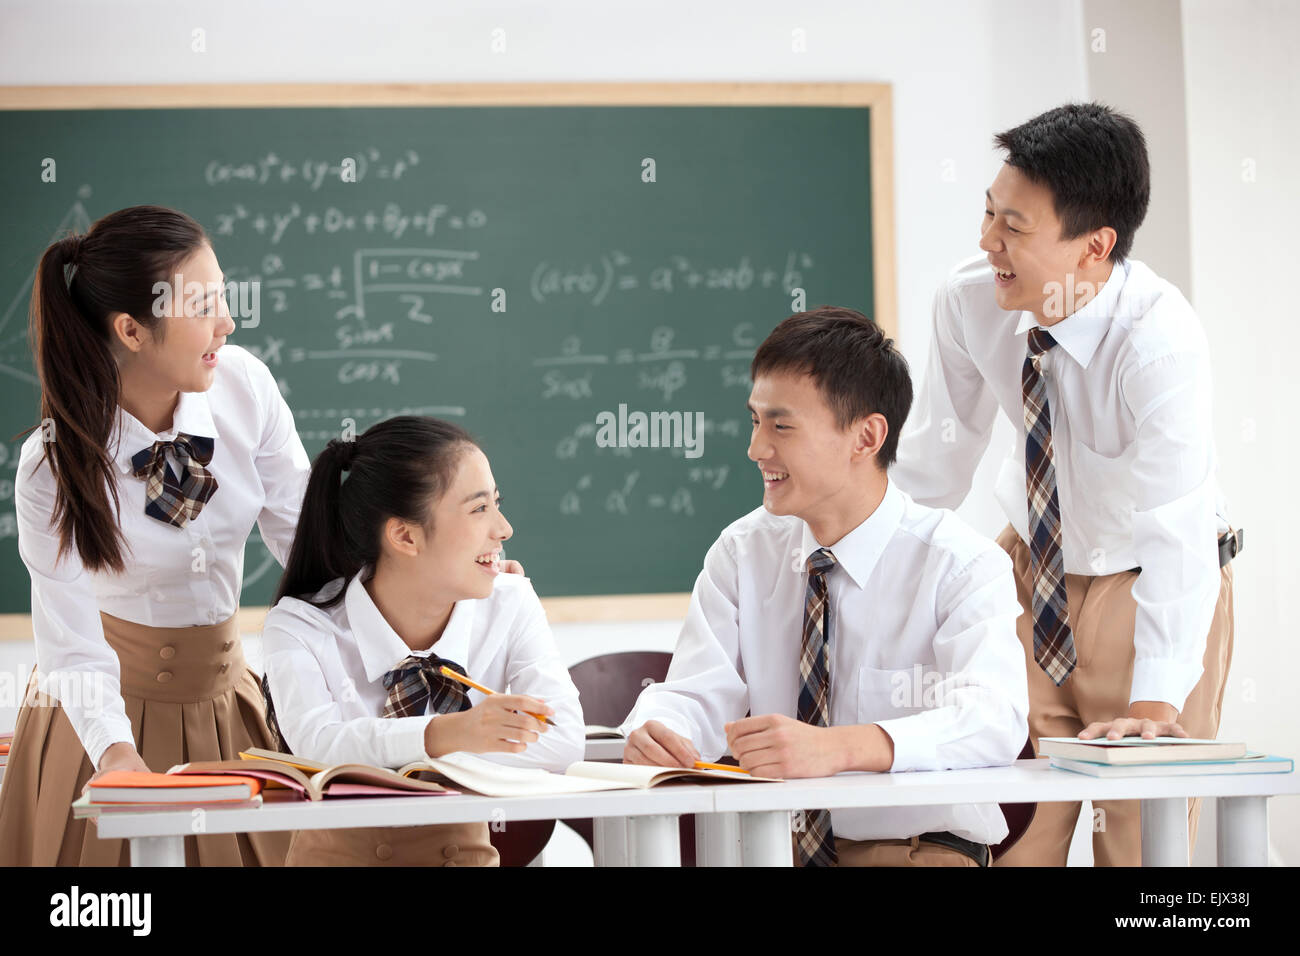 High school students to speak in the classroom - Stock Image